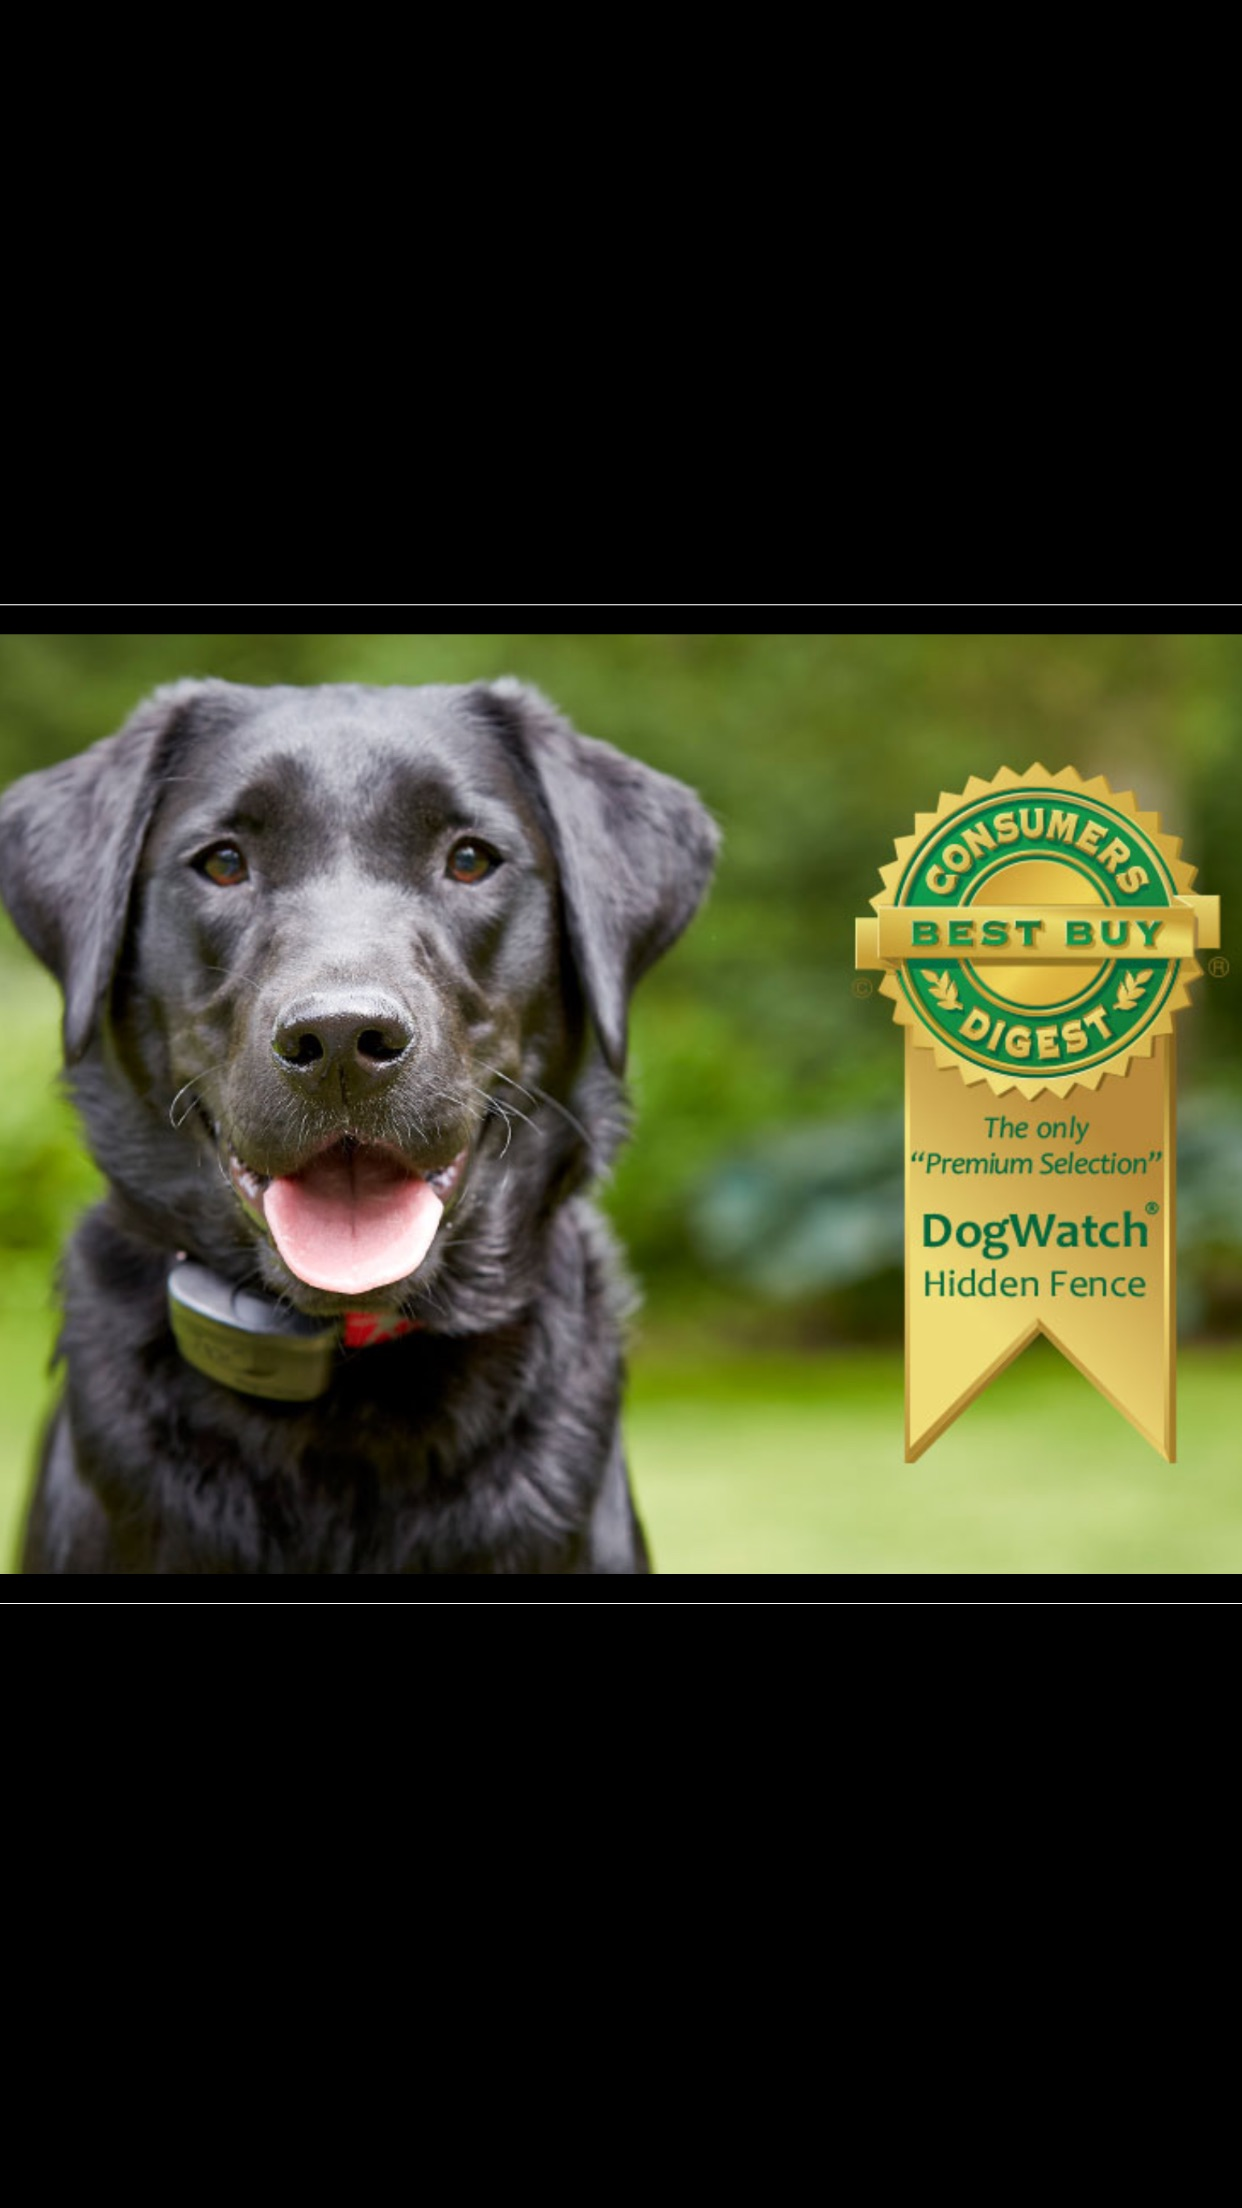 SouthWest DogWatch logo